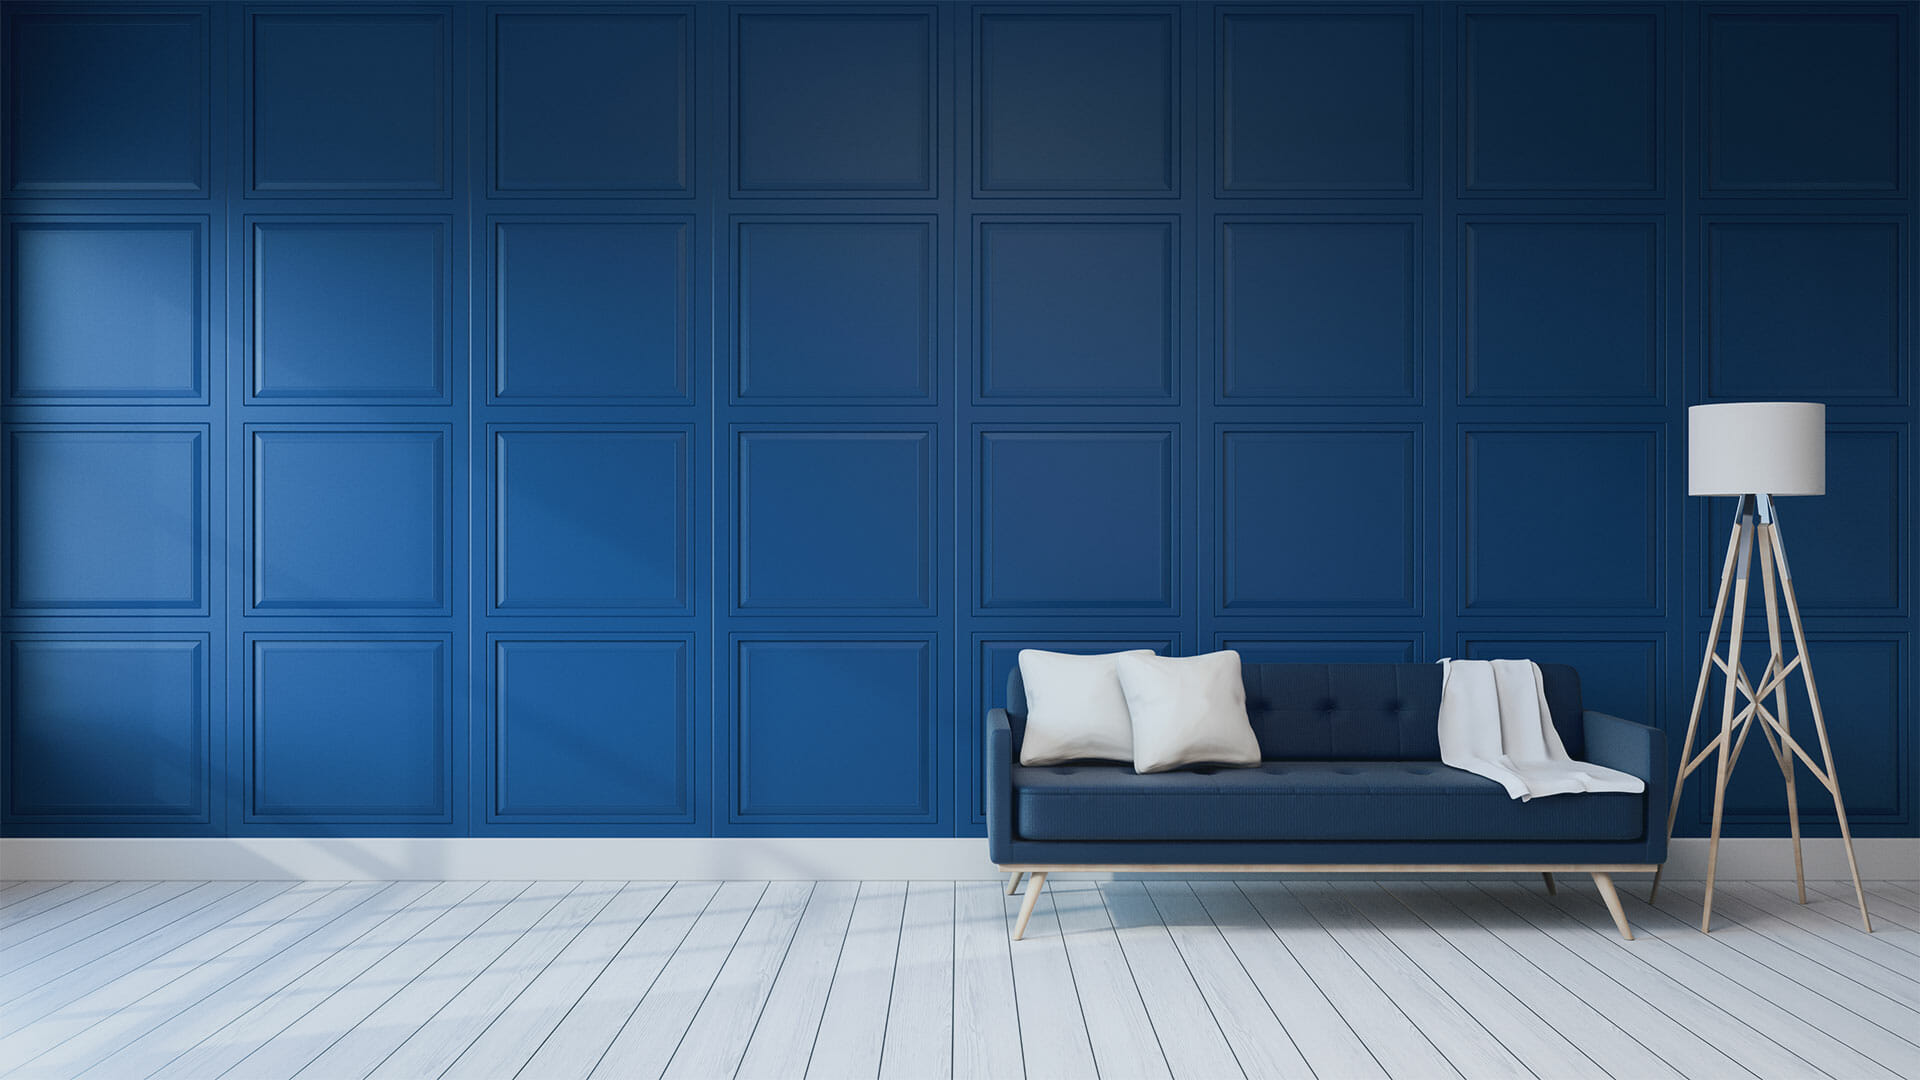 A blue paneled wall with a blue 50s style couch and lamp.